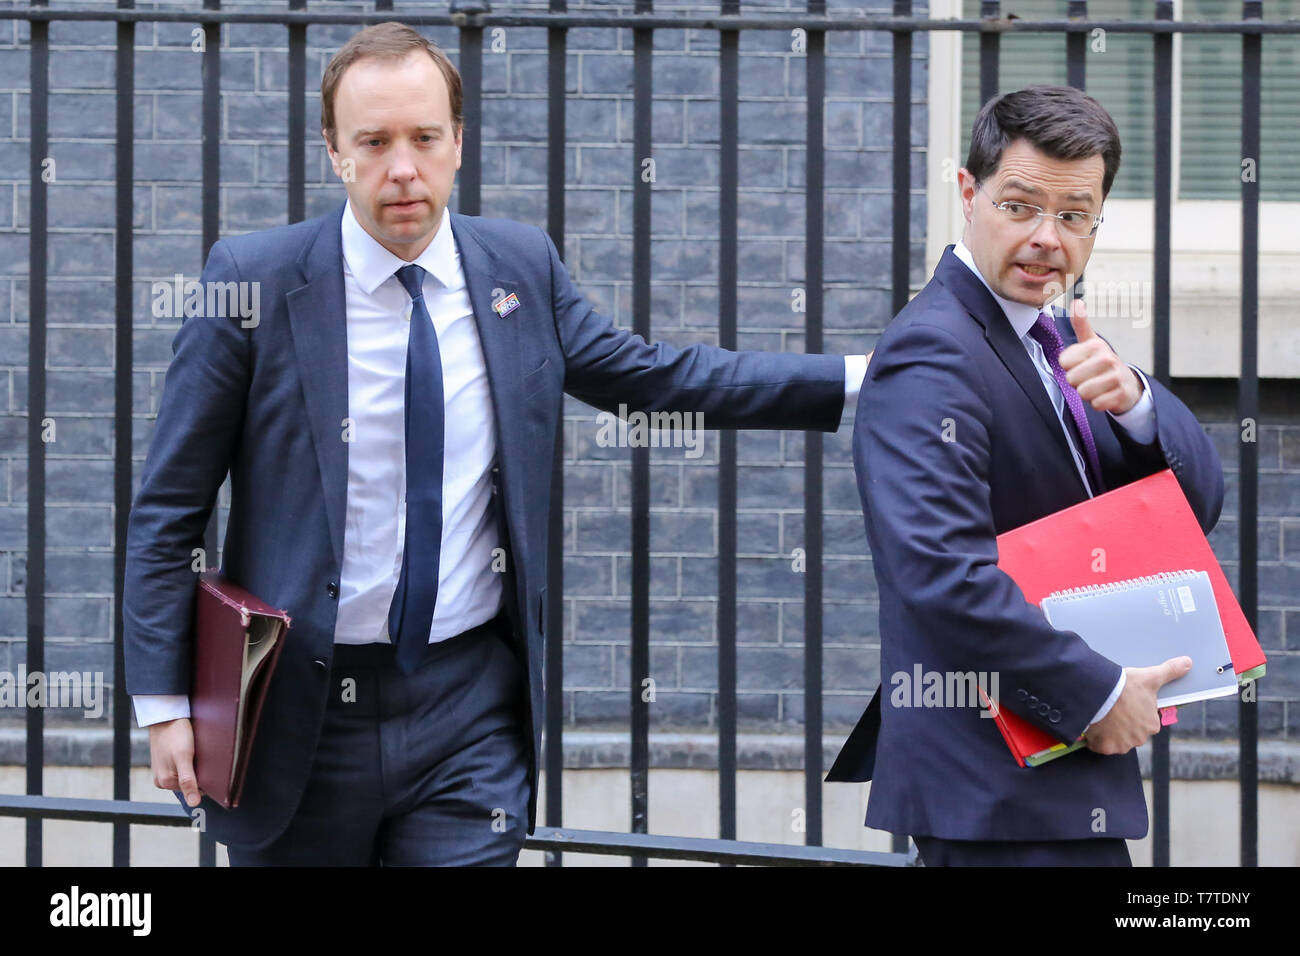 February 26, 2019 - London, UK, United Kingdom - Communities Secretary James Brokenshire (R) and Secretary of State for Health and Social Care (L) Matthew Hancock seen in Downing Street..On 14 June 2017, a fire broke out in the 24-storey Grenfell Tower block of flats in North Kensington, West London where 72 people died, more than 70 others were injured and 223 people escaped..The UK Government is to fund an estimated £200 million to replacement of unsafe Grenfell style cladding on around 170 high-rise private residential buildings after private building owners failed to take action. Communit - Stock Image